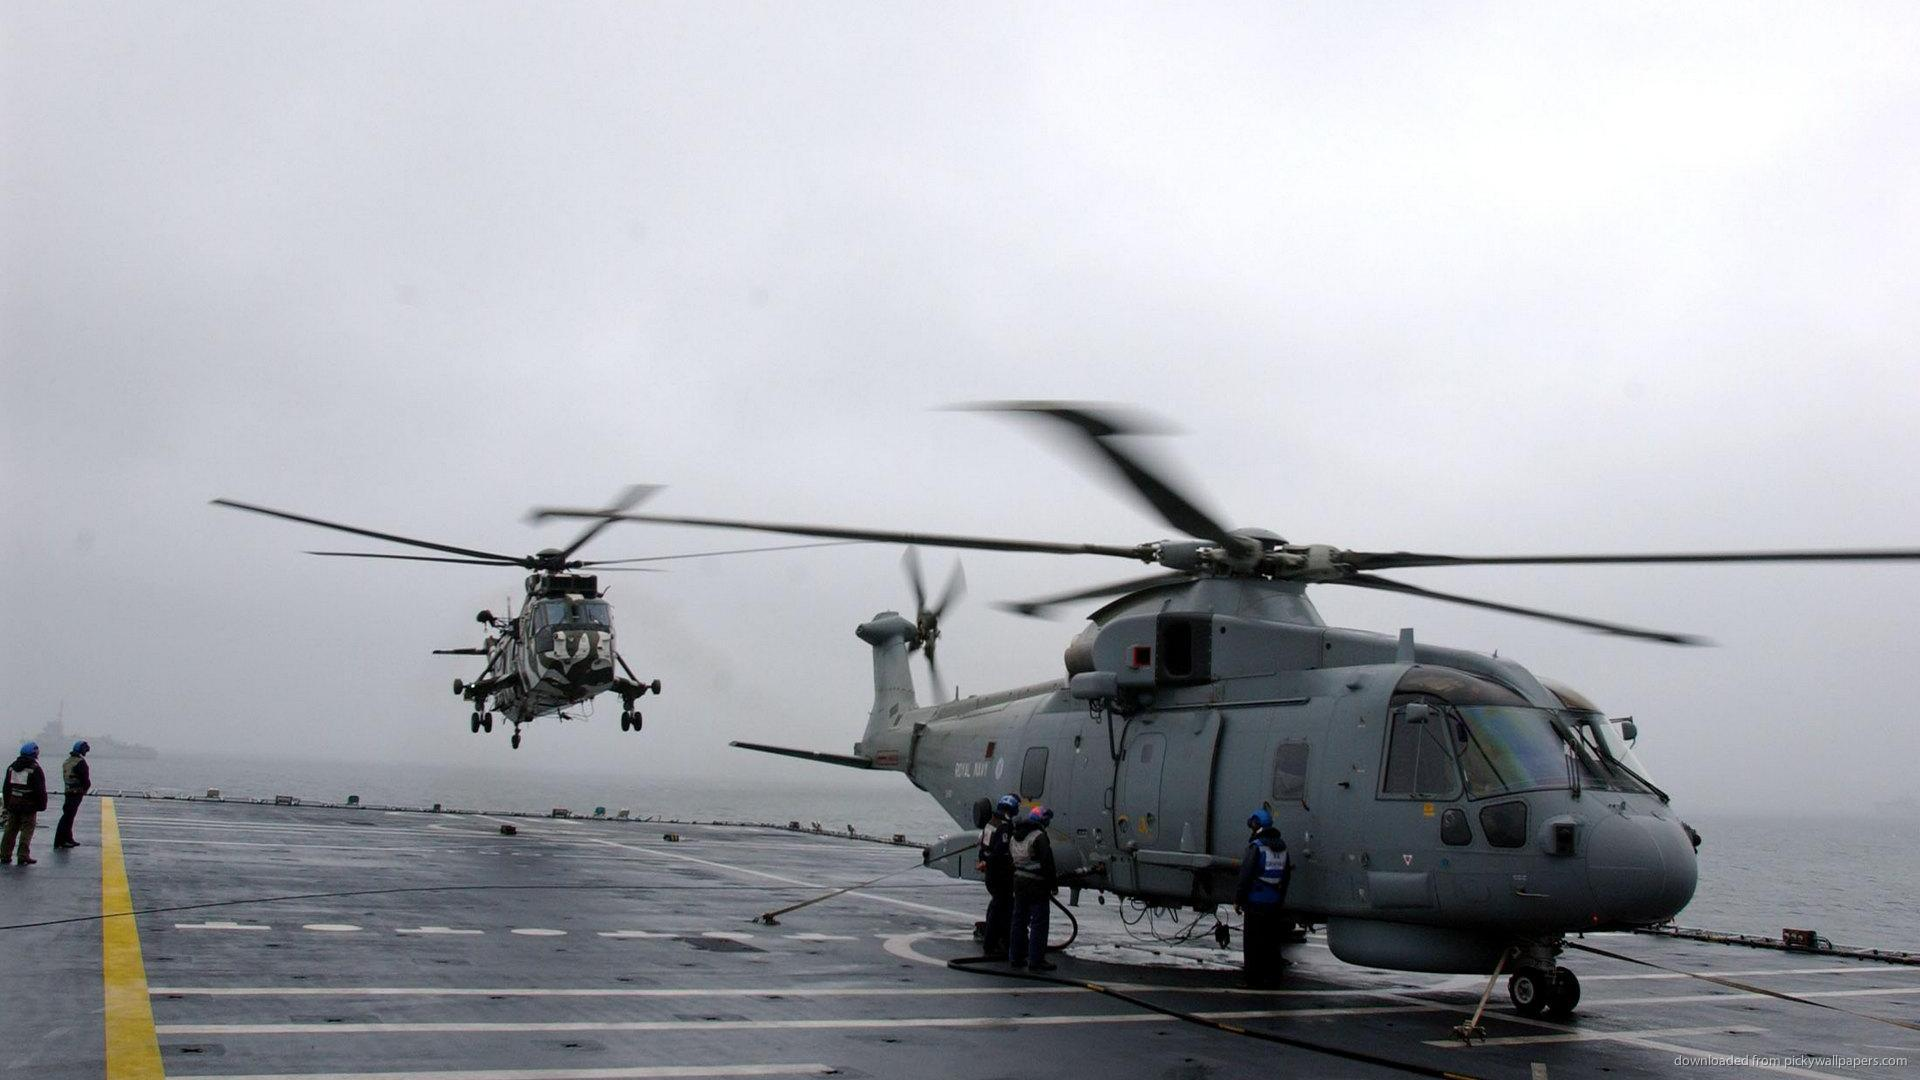 Navy Merlin And Royal Marine Sea King Screensaver For Kindle3 And DX 1920x1080